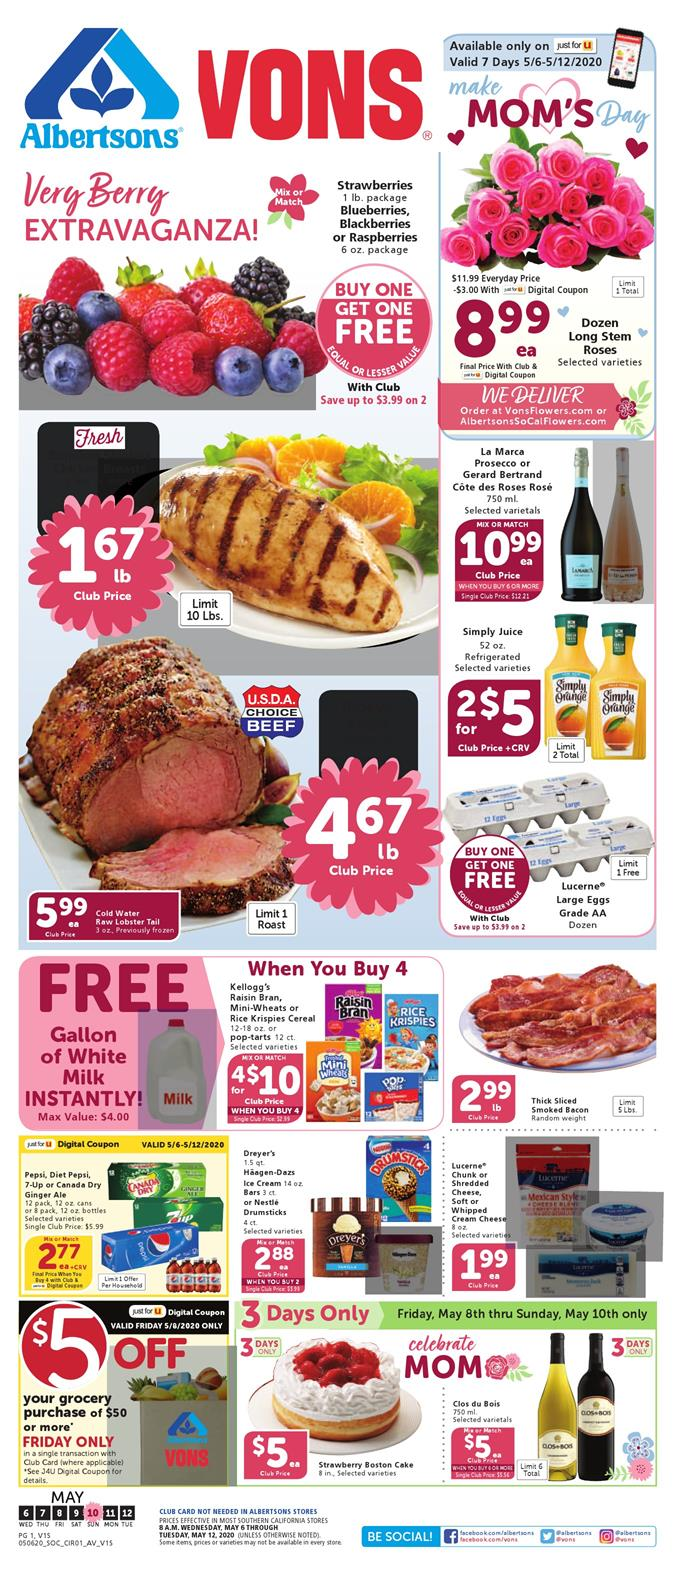 vons weekly ad may 6 2020